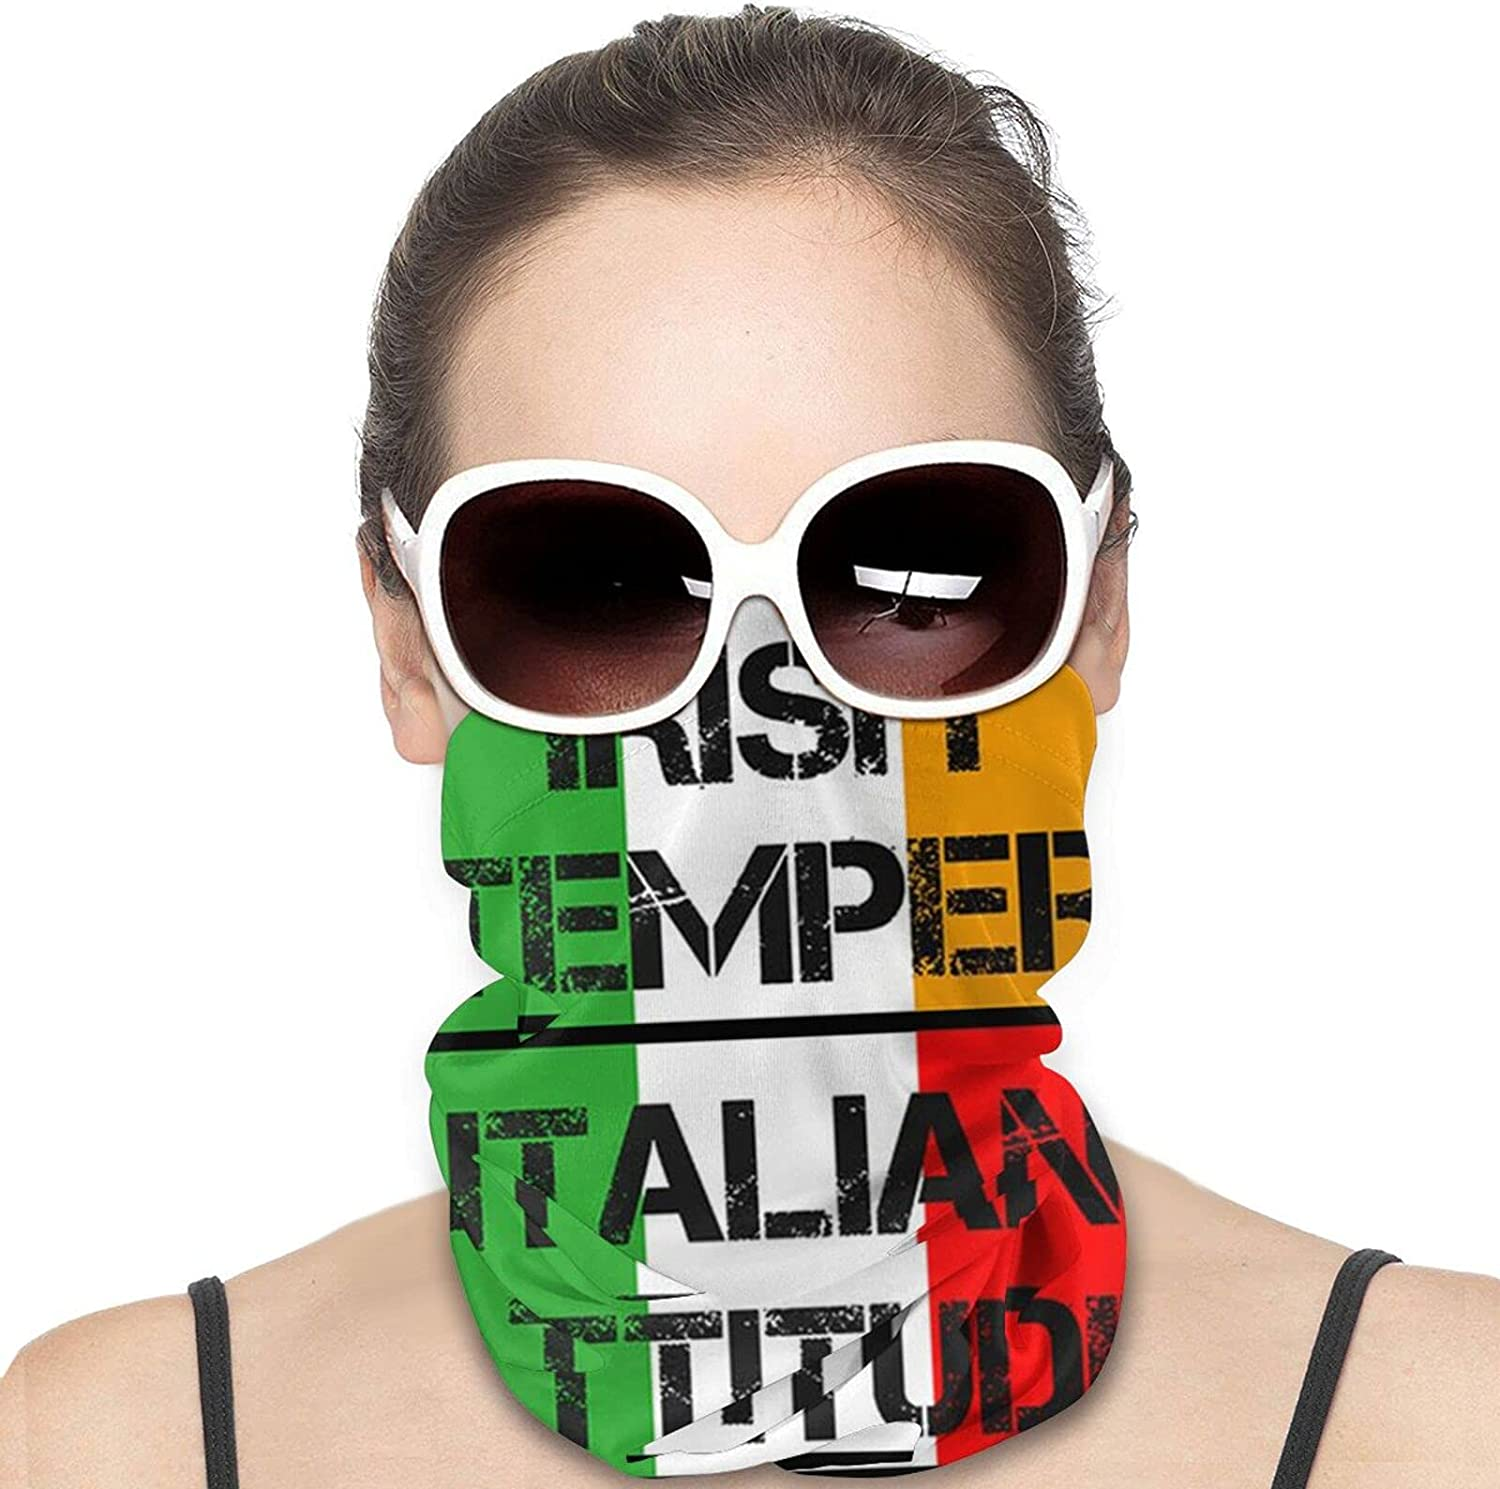 Italian Heritage Yeah I'm Italian Round Neck Gaiter Bandnas Face Cover Uv Protection Prevent bask in Ice Scarf Headbands Perfect for Motorcycle Cycling Running Festival Raves Outdoors